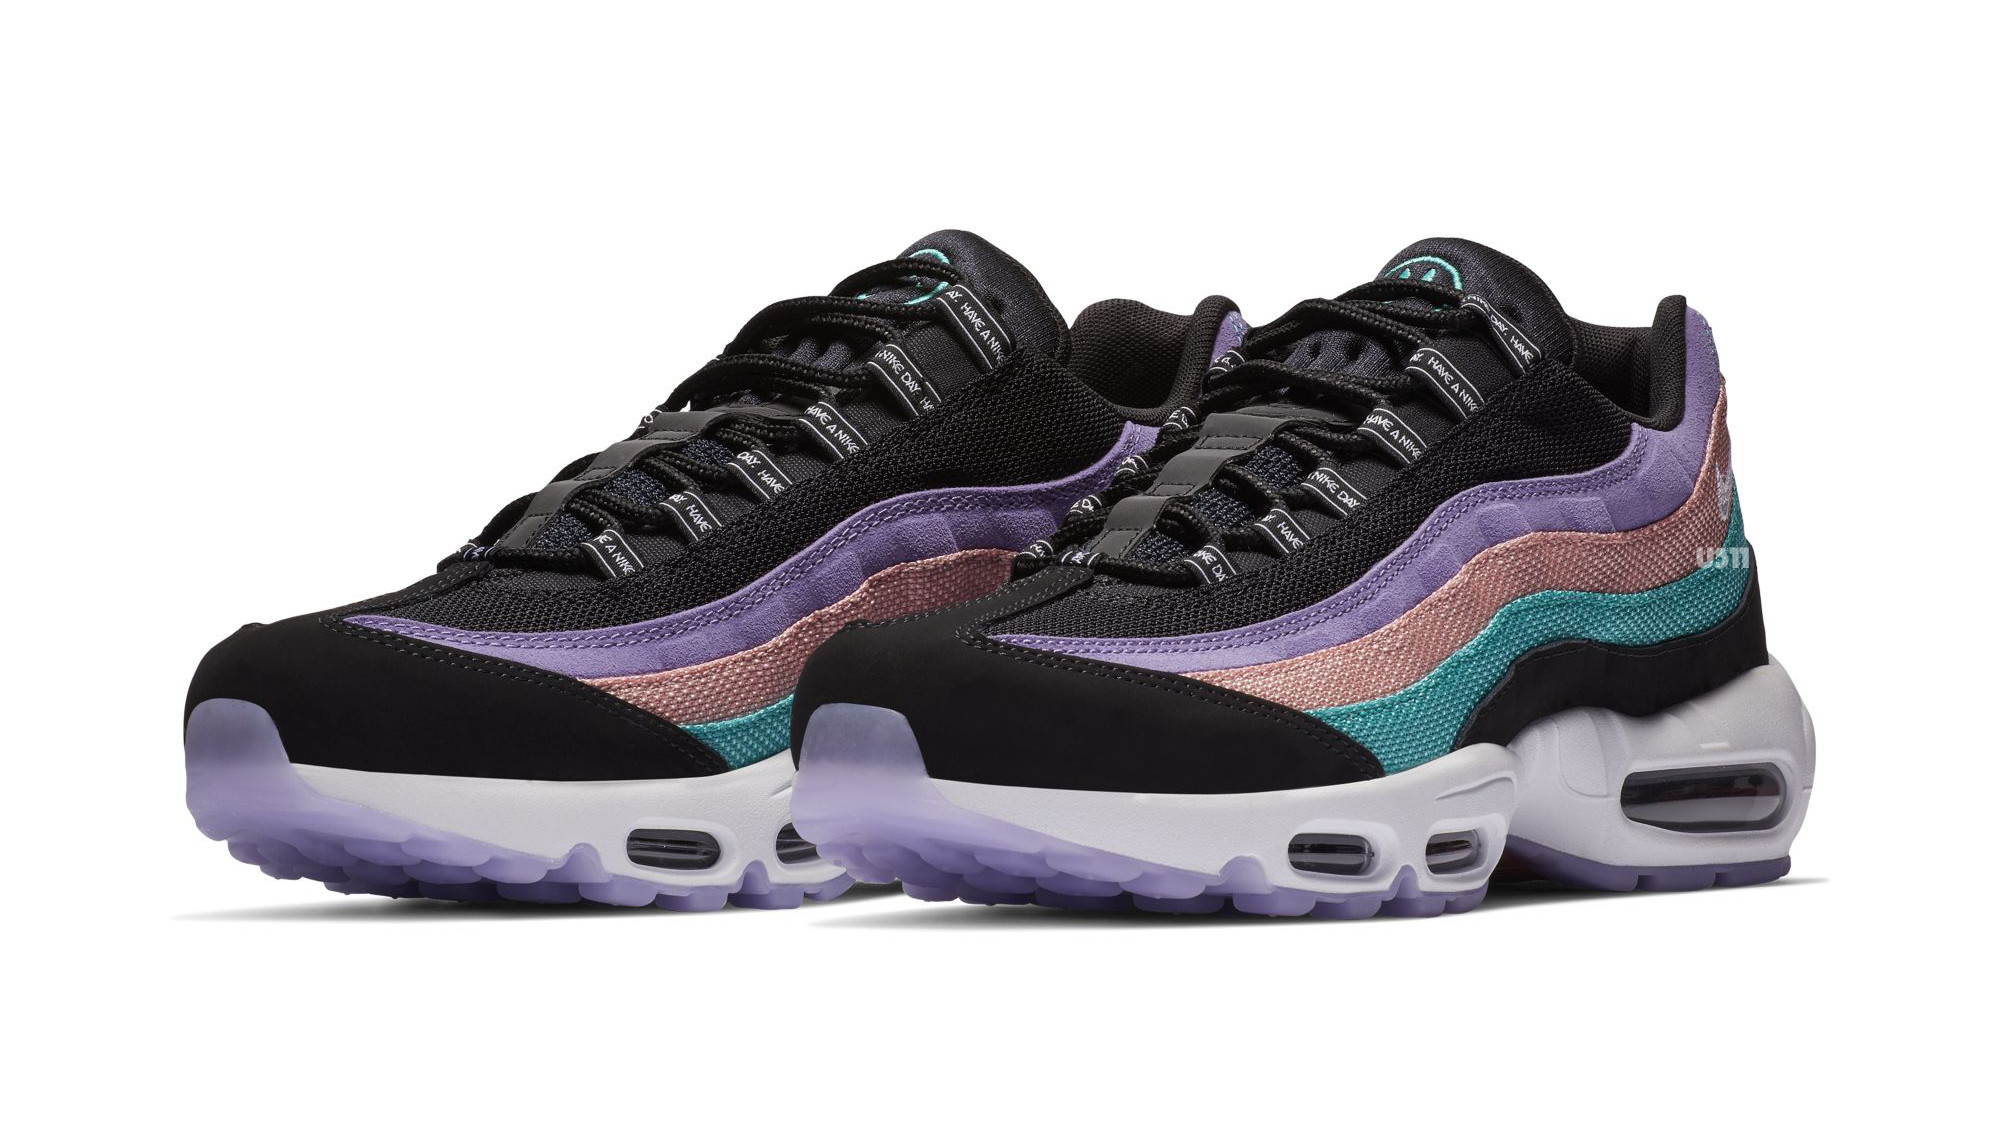 Nike Air Max 'Have a Nike Day' Pack March 2019 Release Date